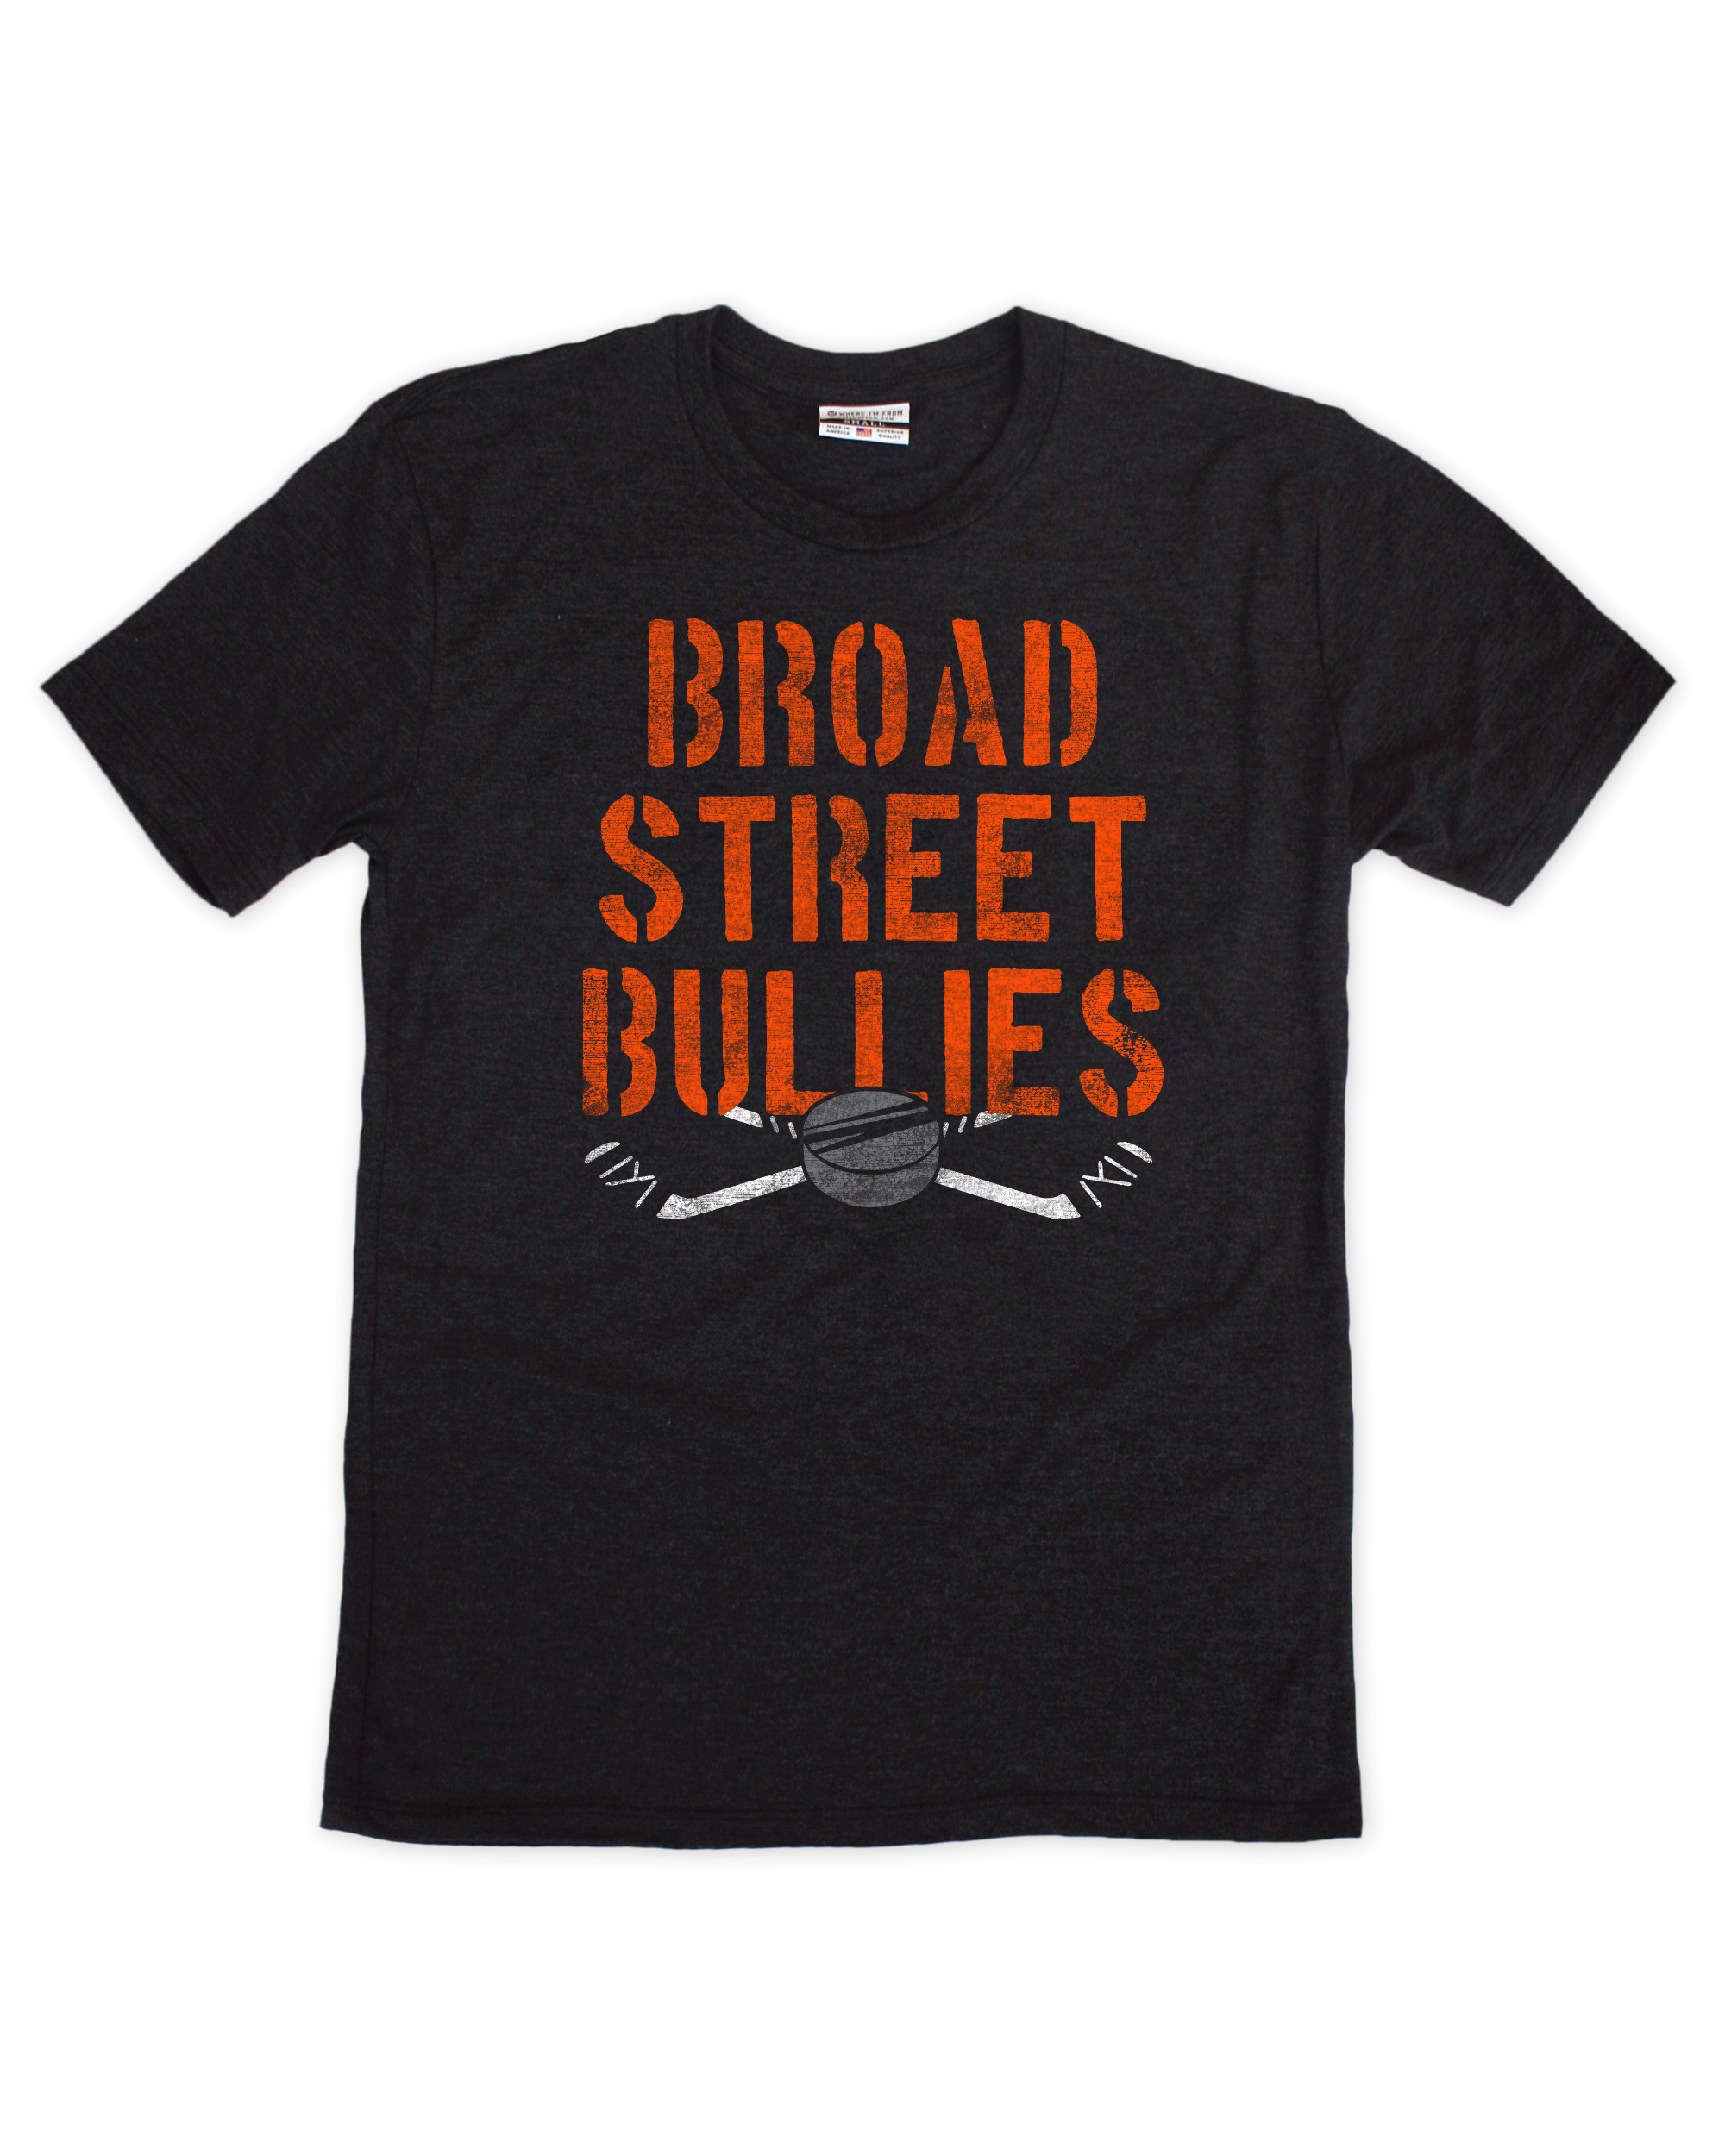 Broad Street Bullies Crew - Aphillyated